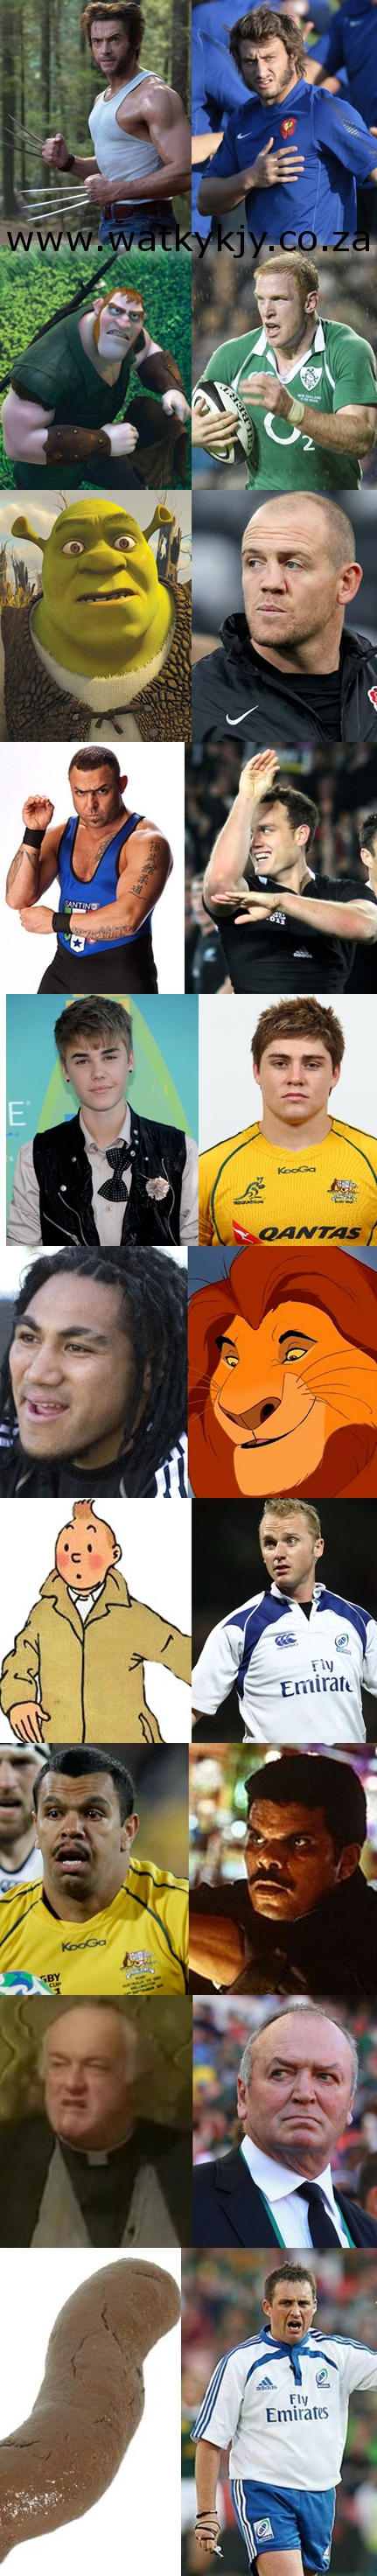 rugby lookalikes